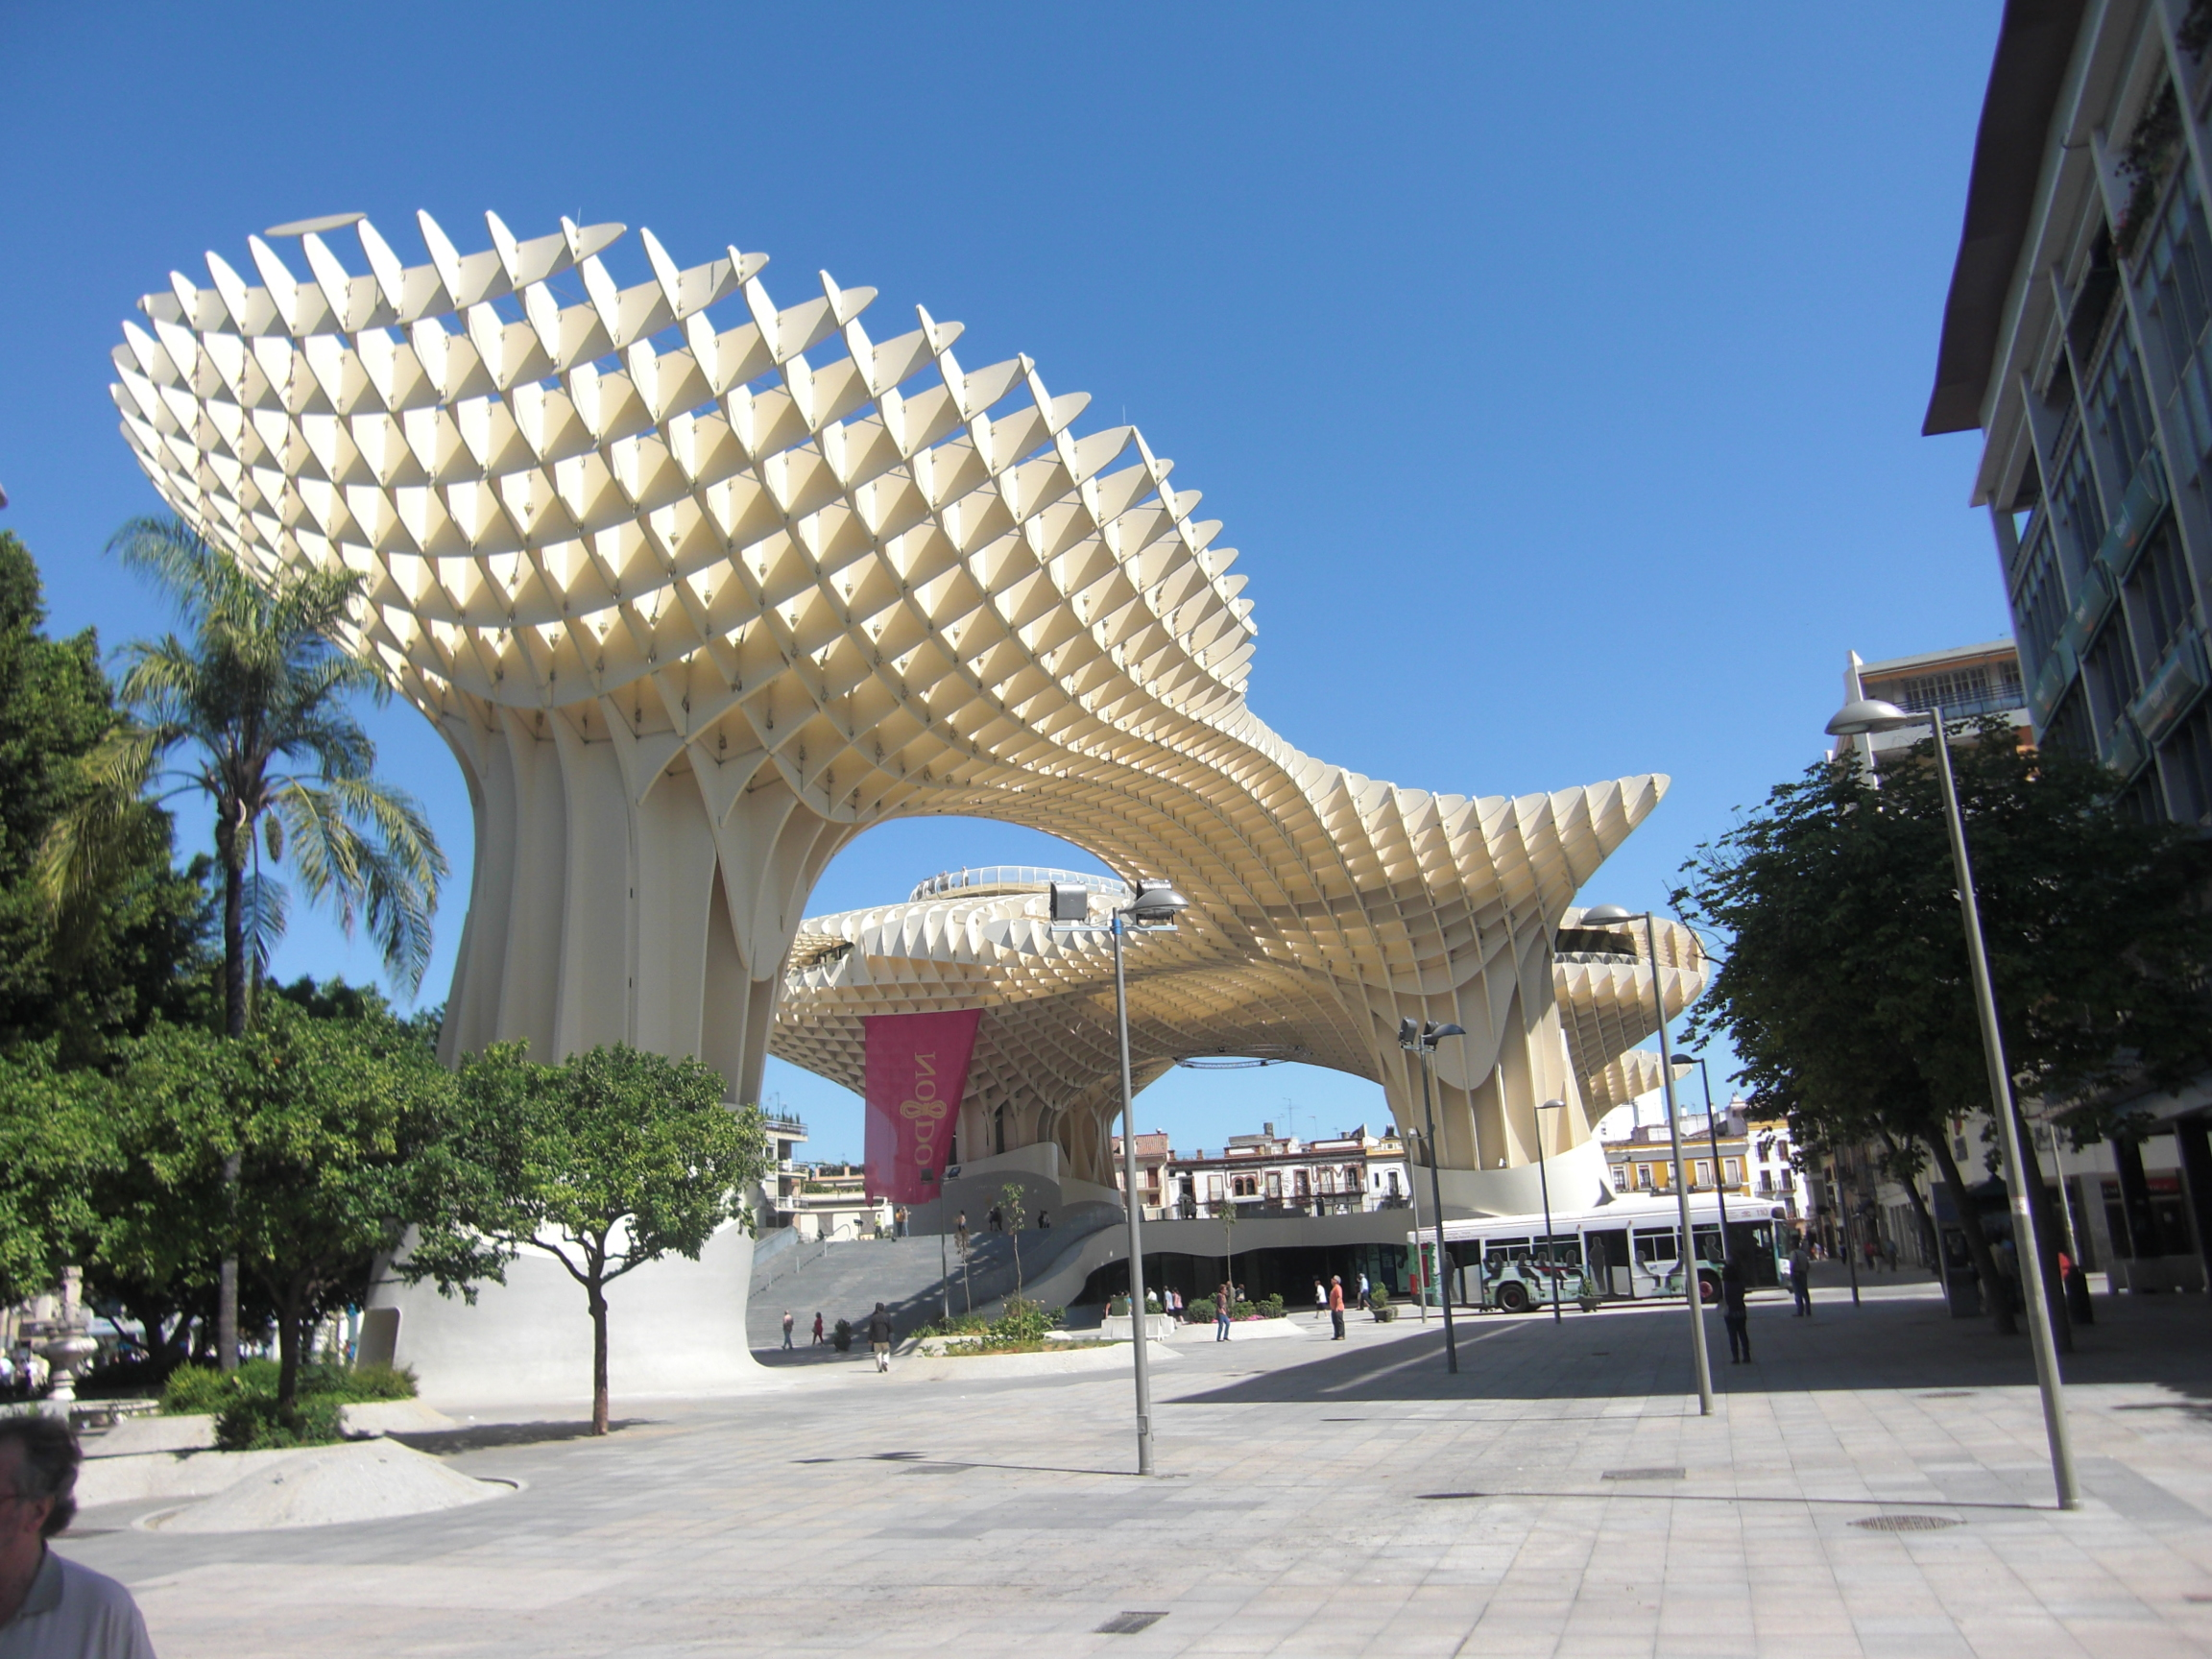 One of the top sights in Seville, Metropol Parasol